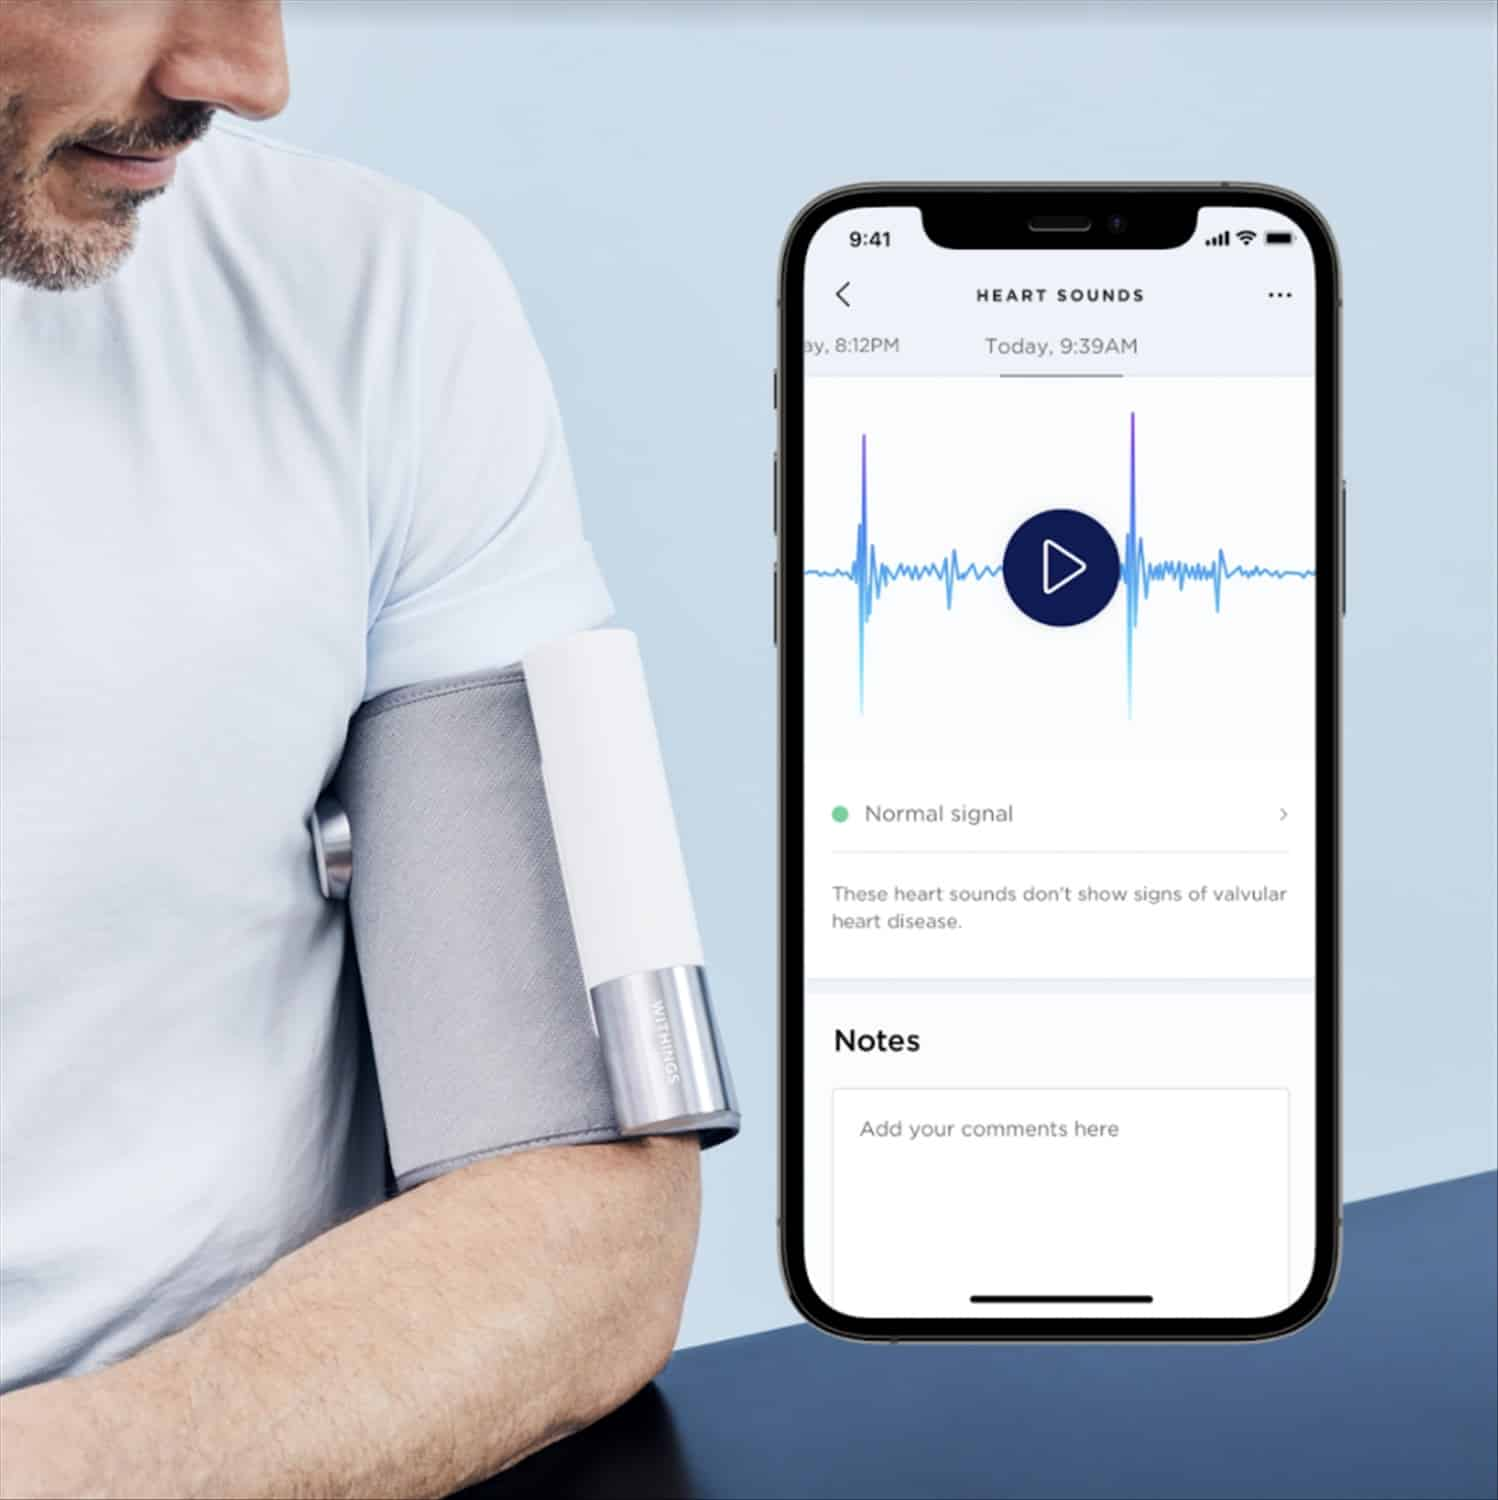 Withings just released the world's first blood pressure monitor with ECG and digital stethoscope